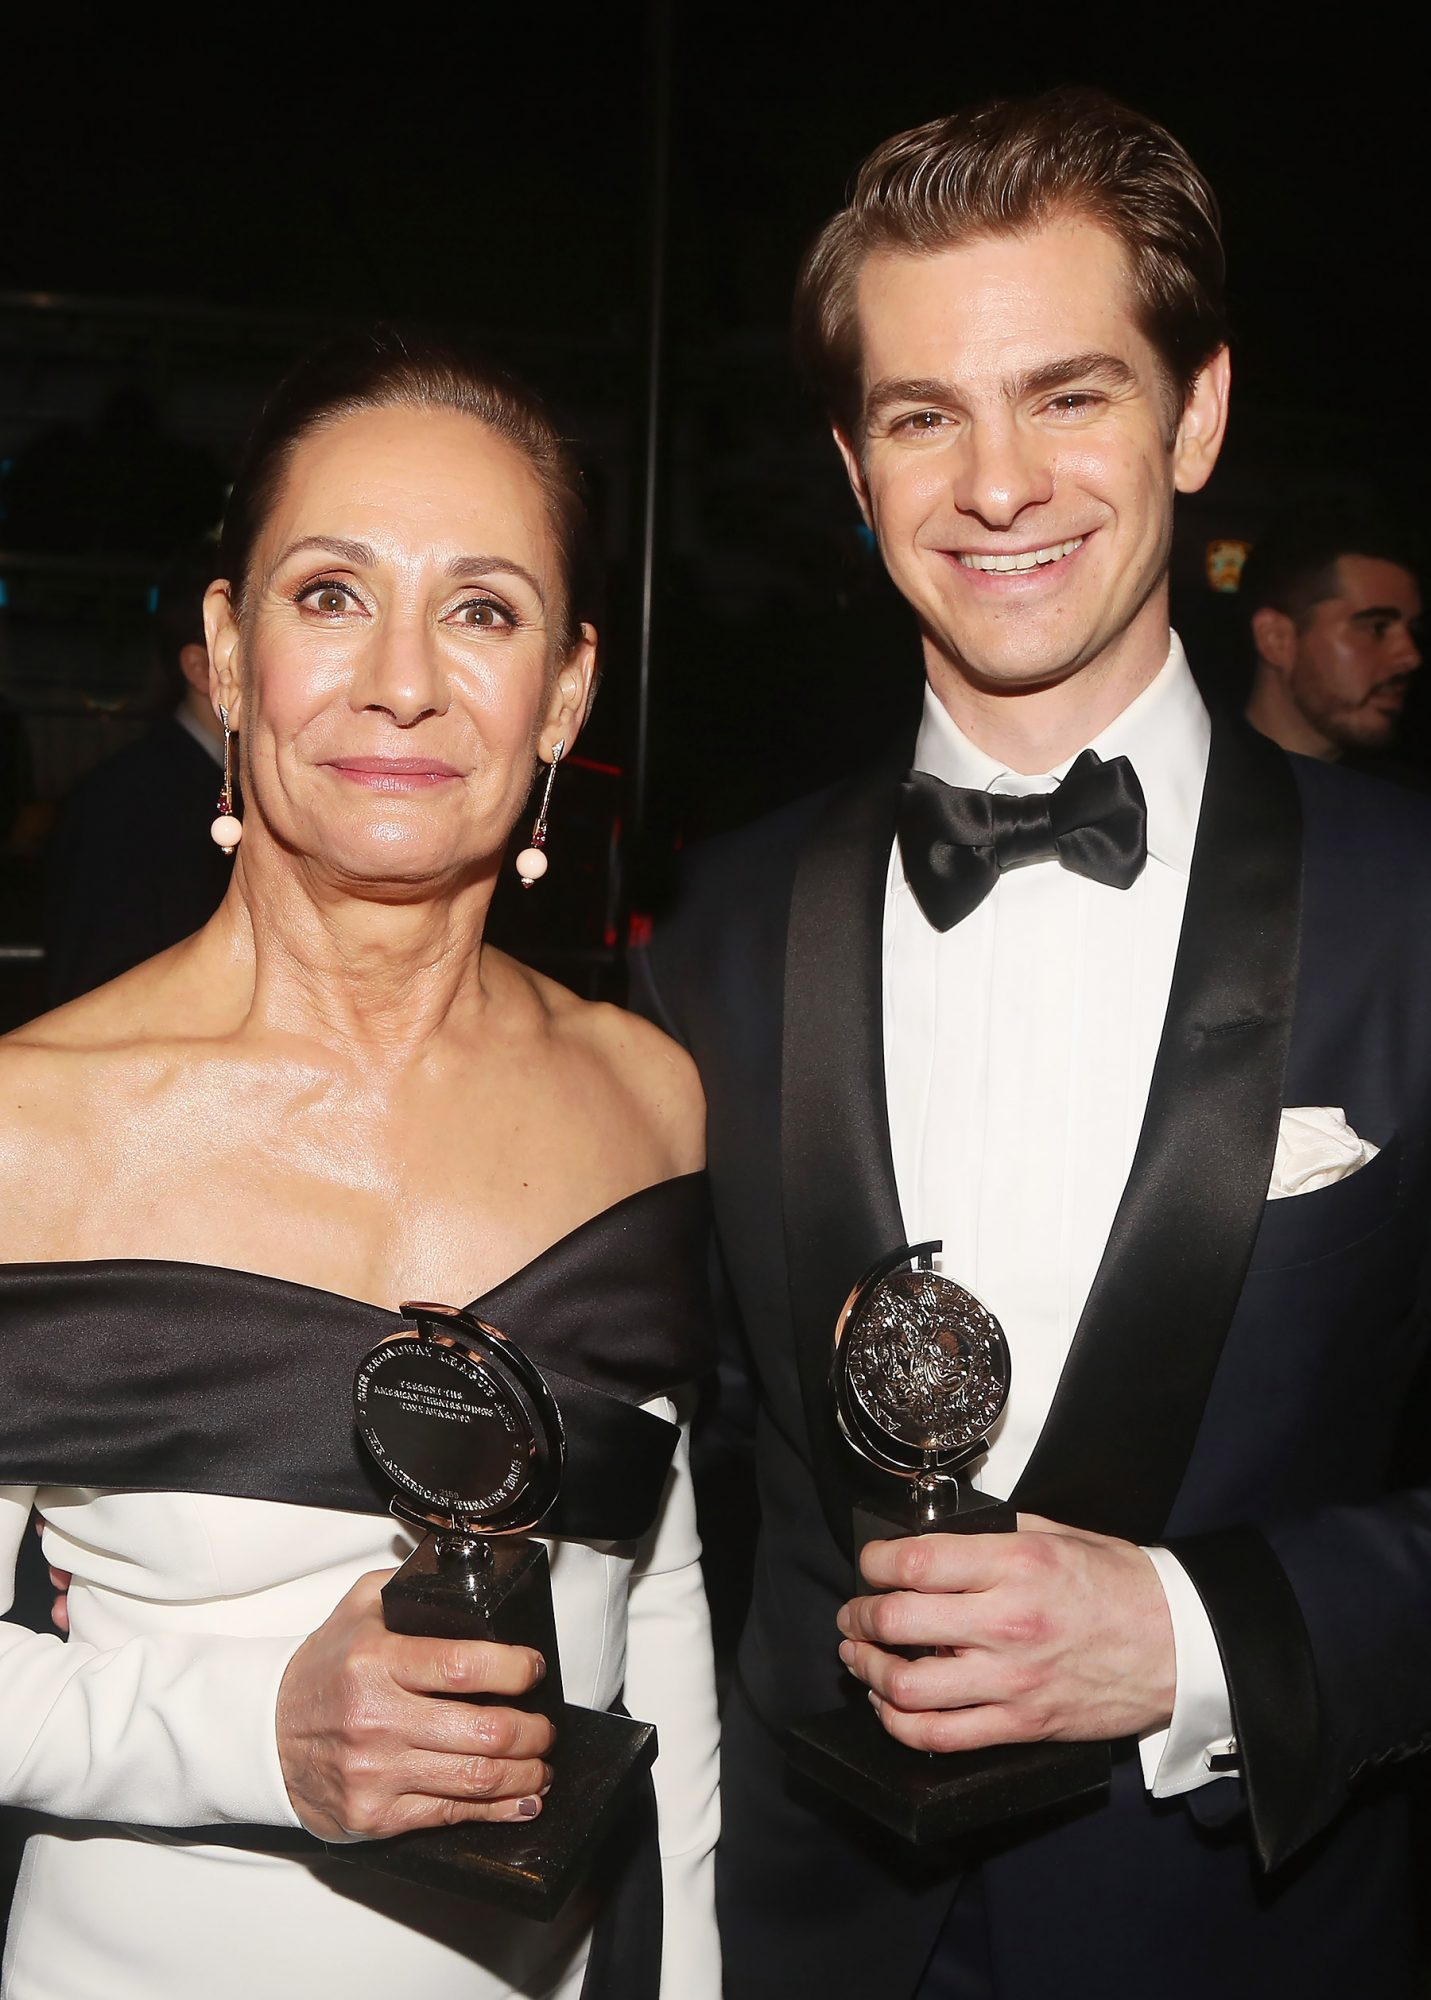 72nd Annual Tony Awards - After Parties